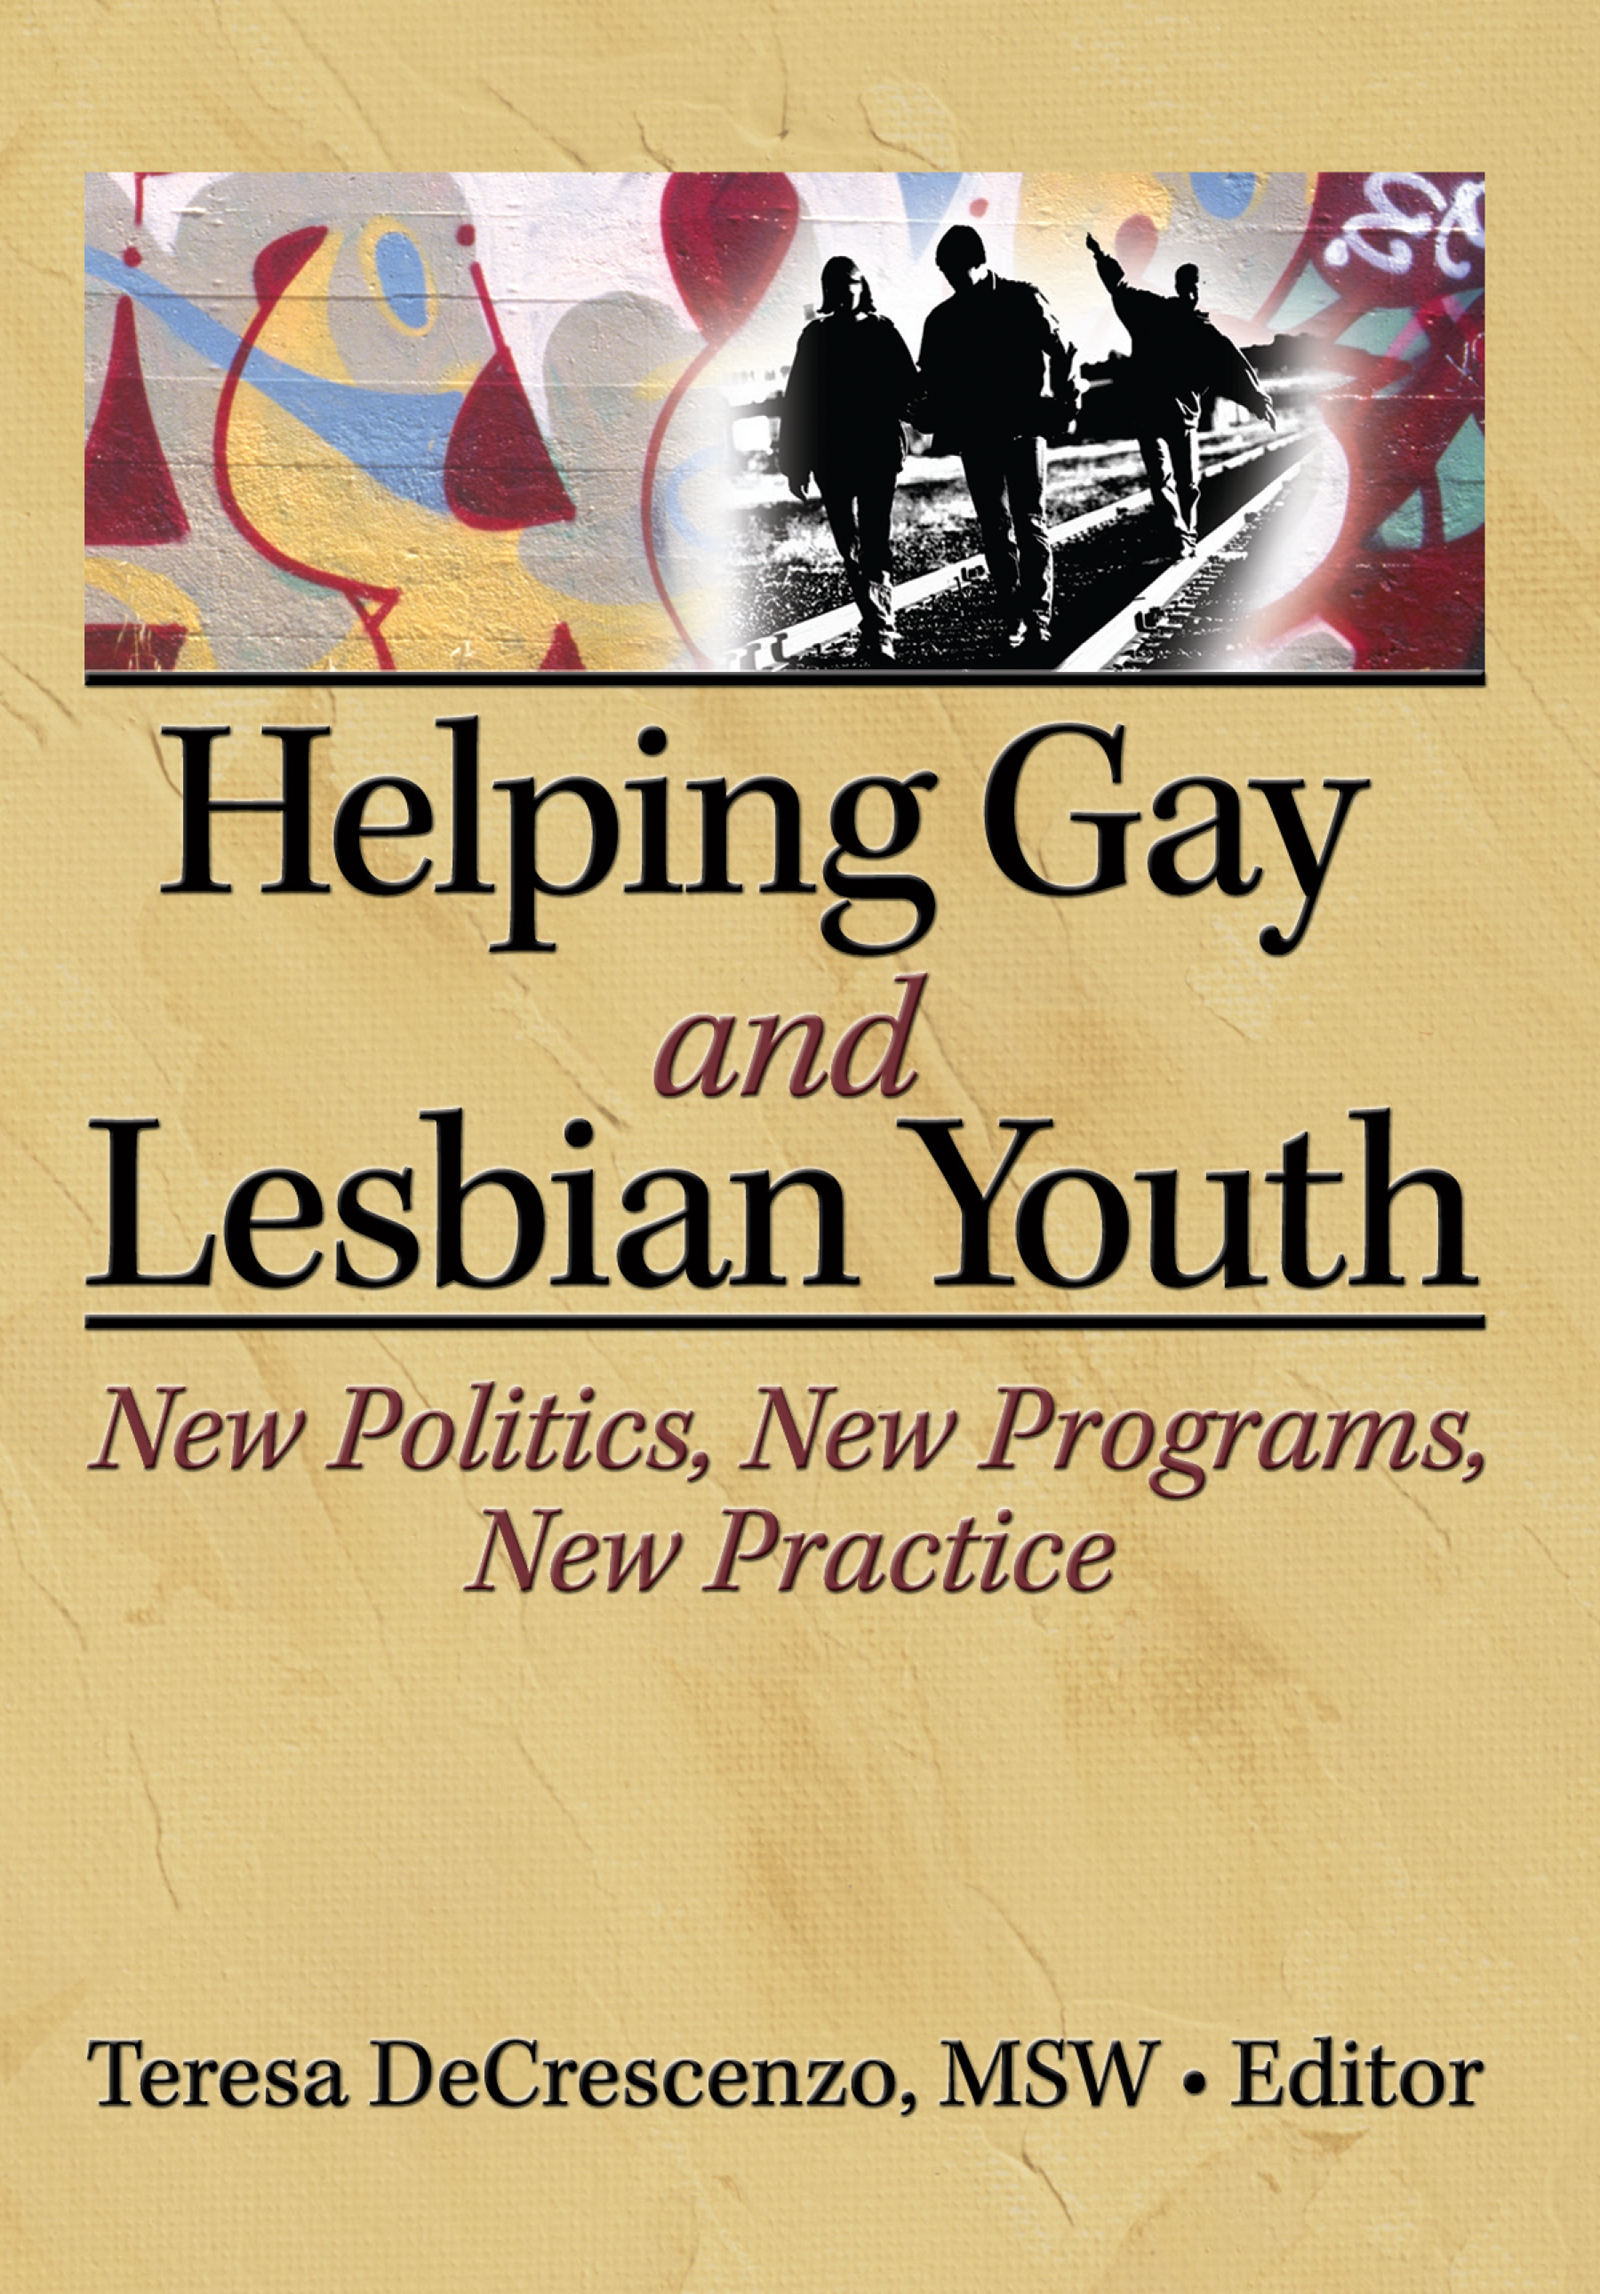 Helping Gay and Lesbian Youth